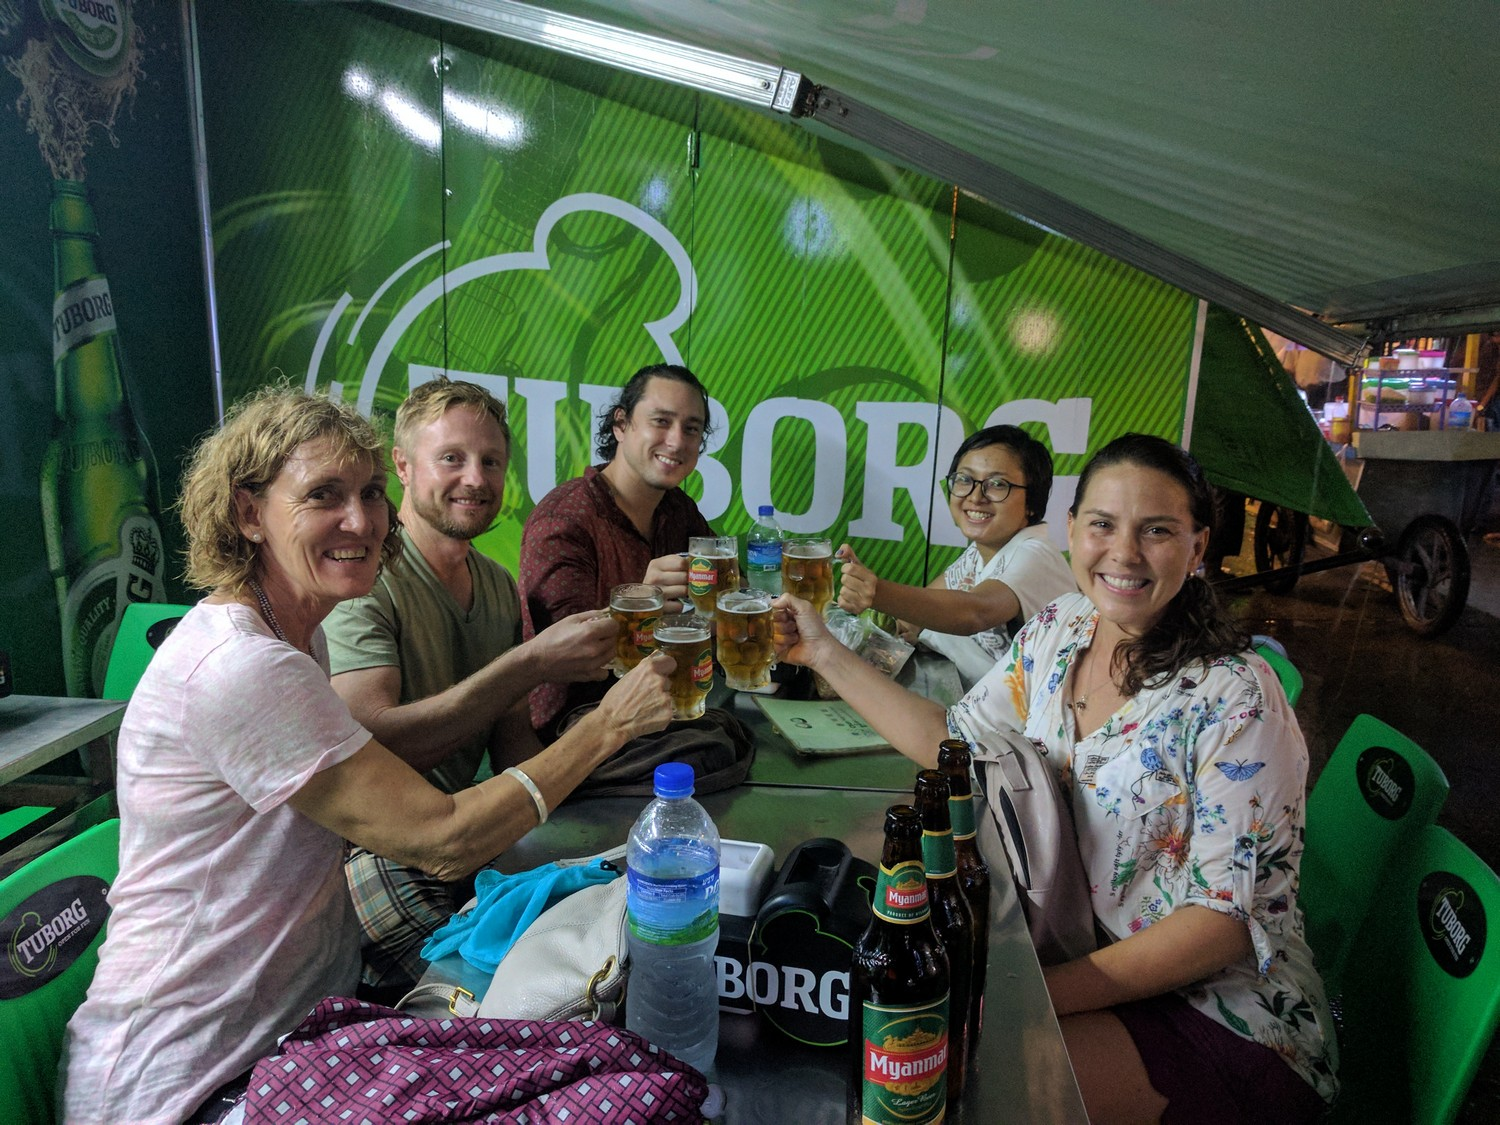 Yangon Food Tour in the evening at 19th Street